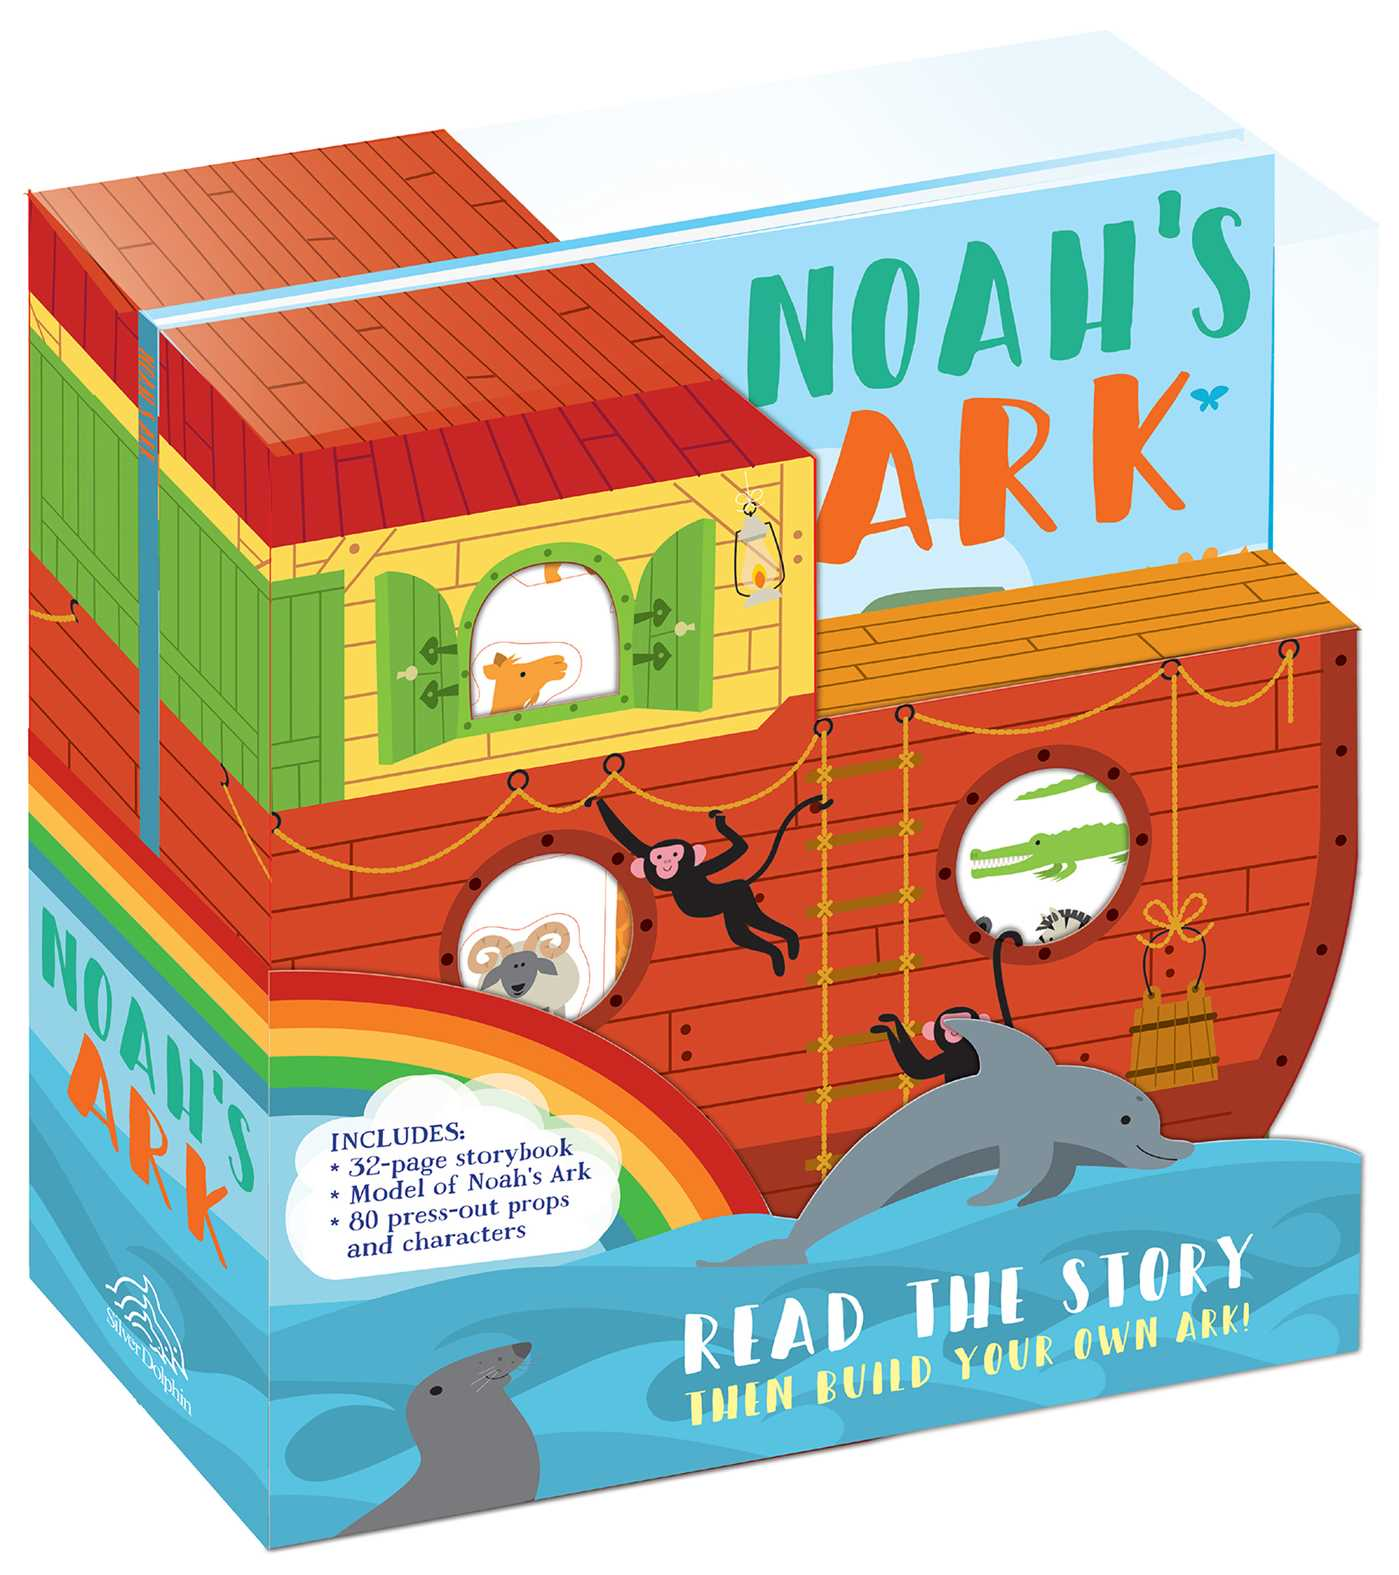 Noah's Ark - Book Summary & Video | Official Publisher Page | Simon